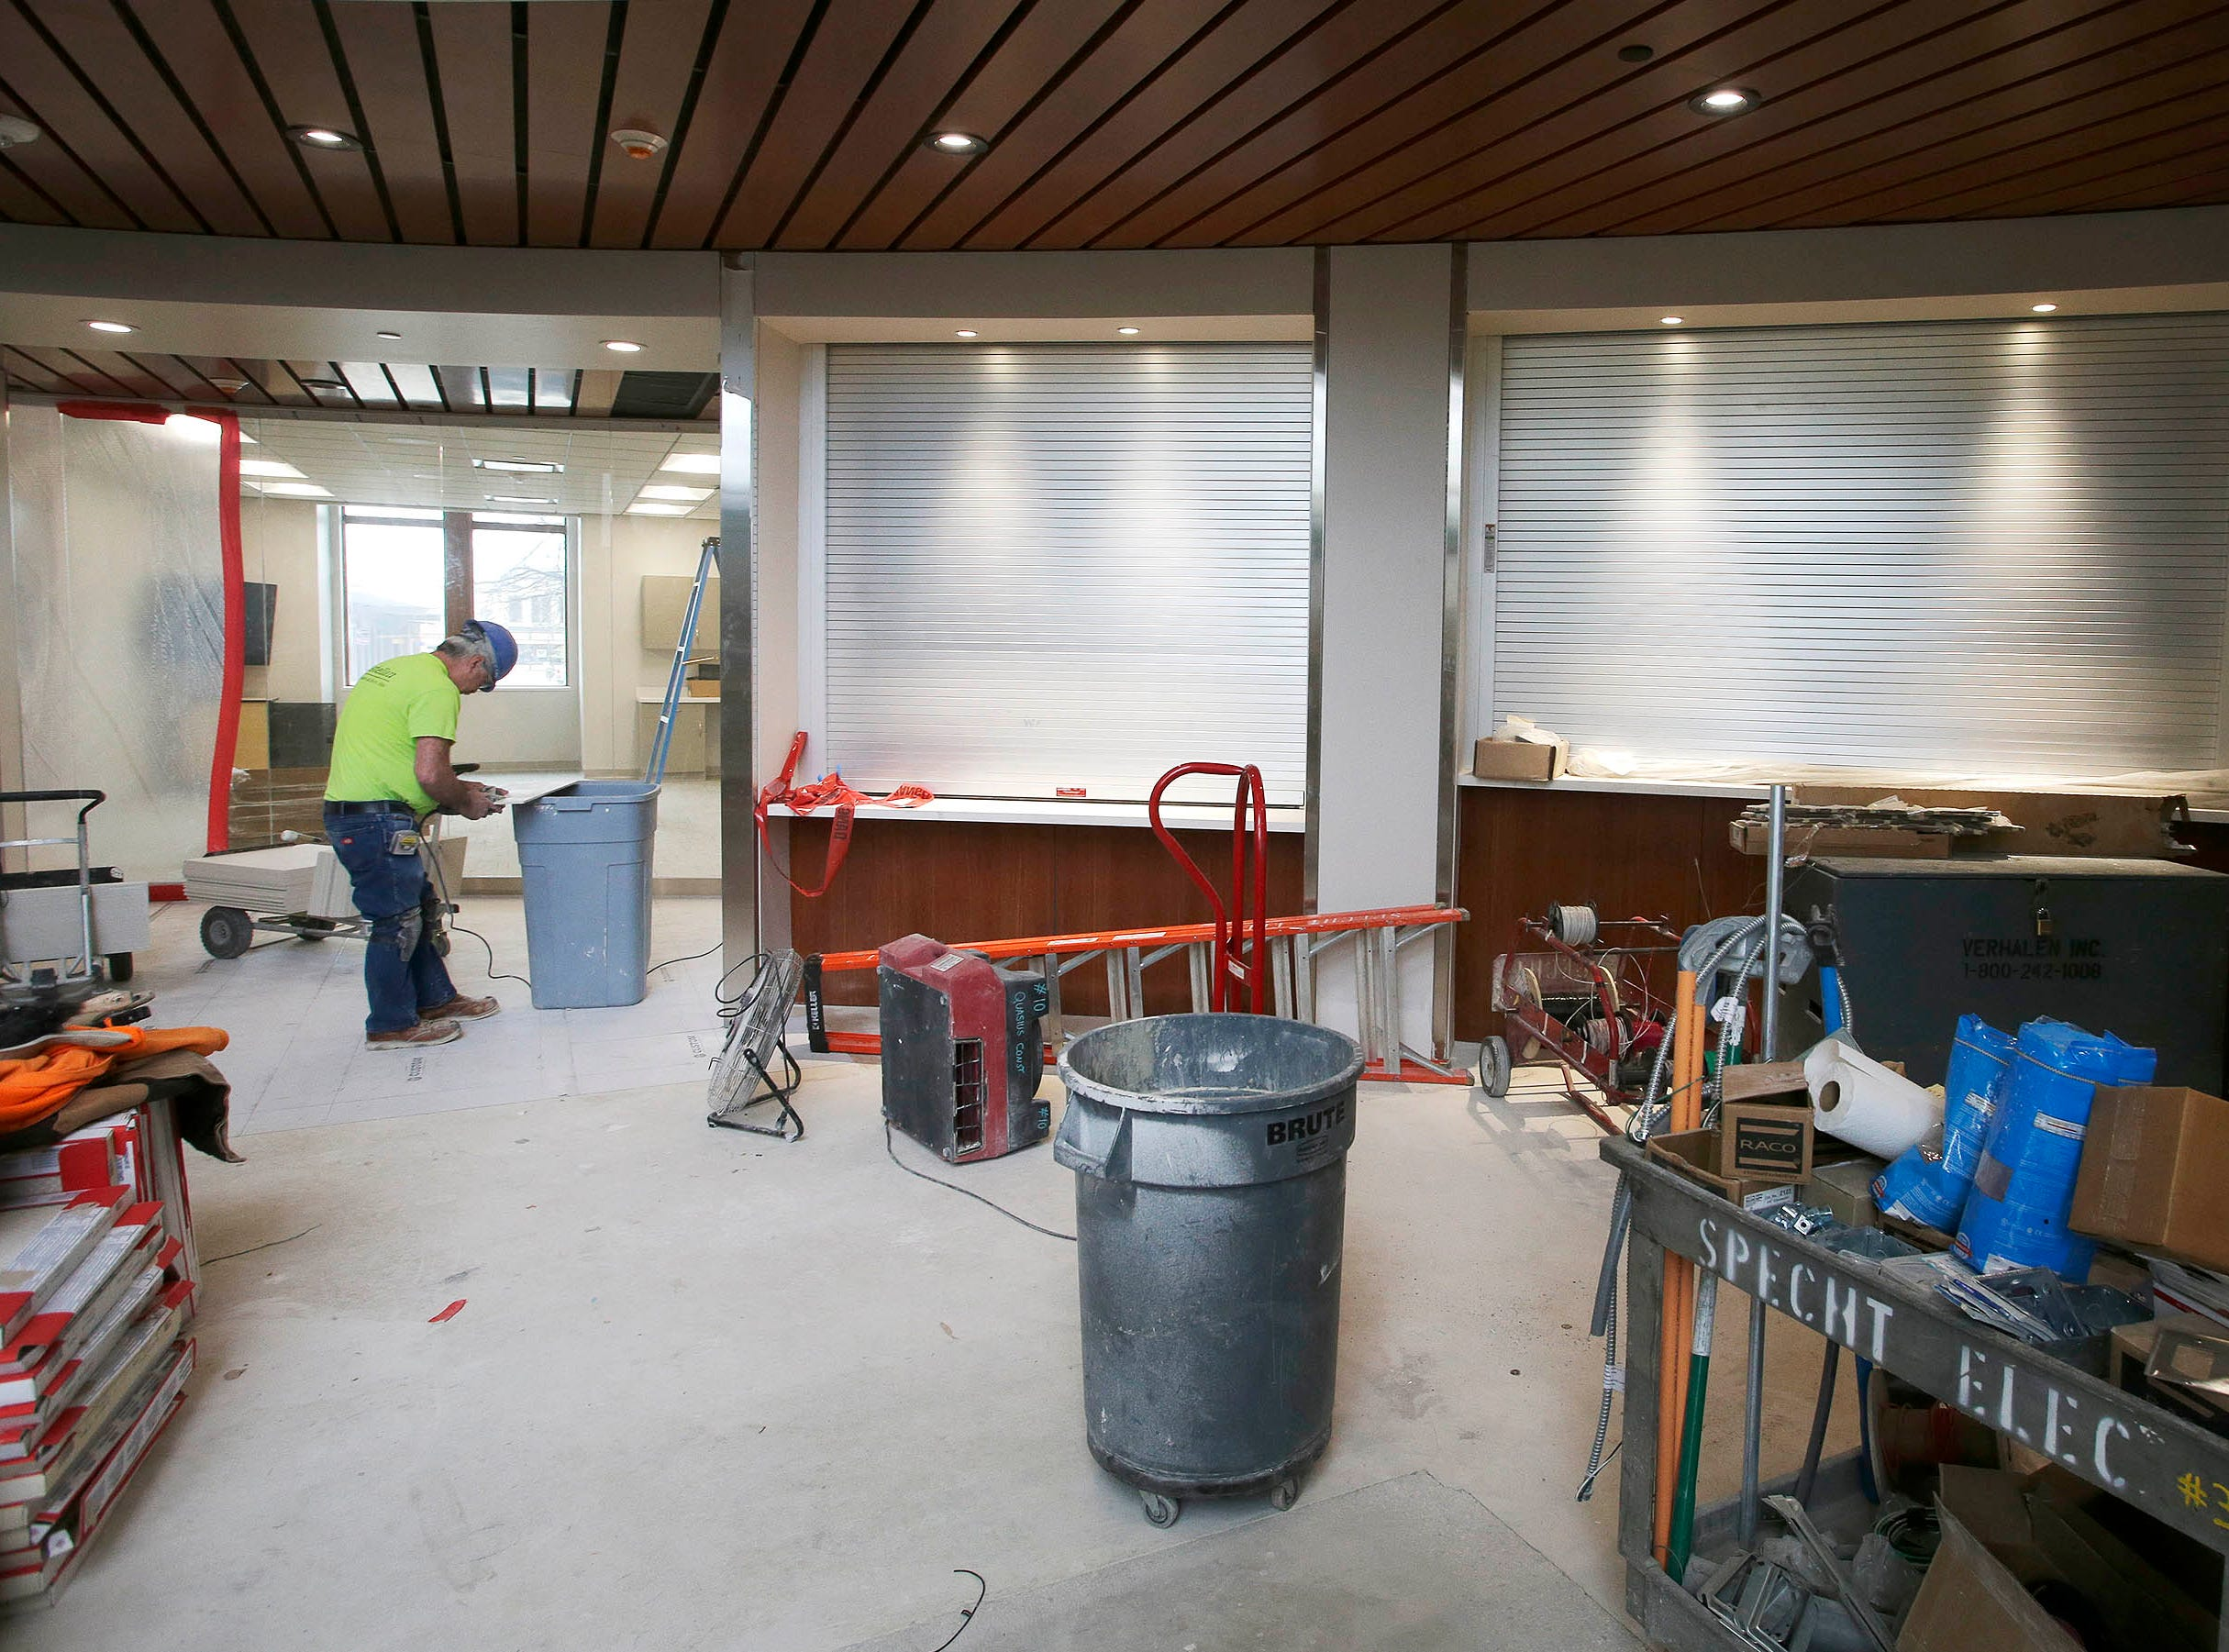 The entrance area on the first floor at Sheboygan City Hall as seen, Tuesday, May 7, 2019, in Sheboygan, Wis. The facility is going through a complete renovation.